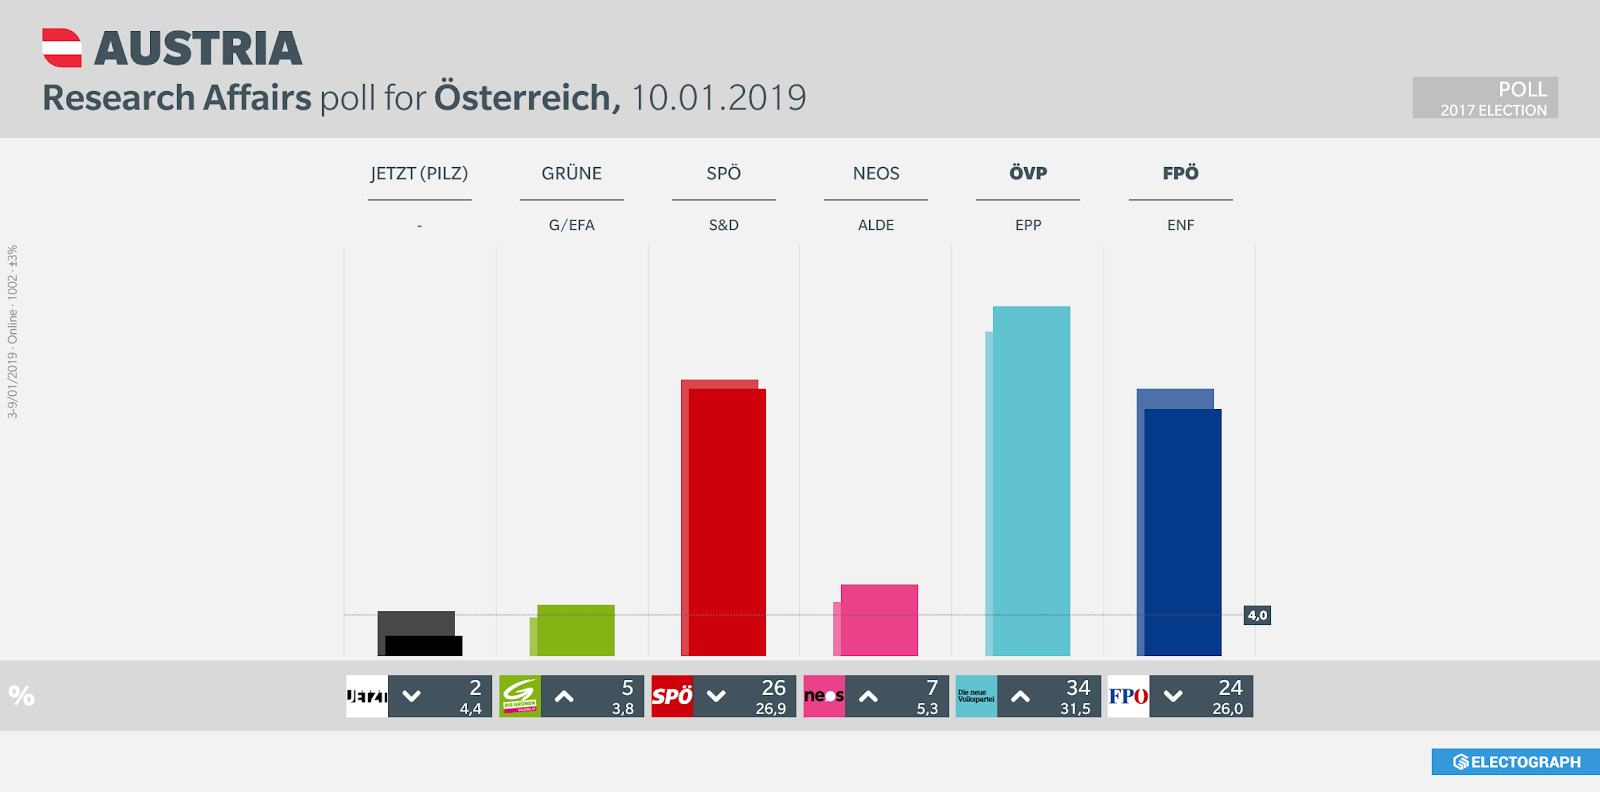 AUSTRIA: Research Affairs poll chart for Österreich, 10 January 2019